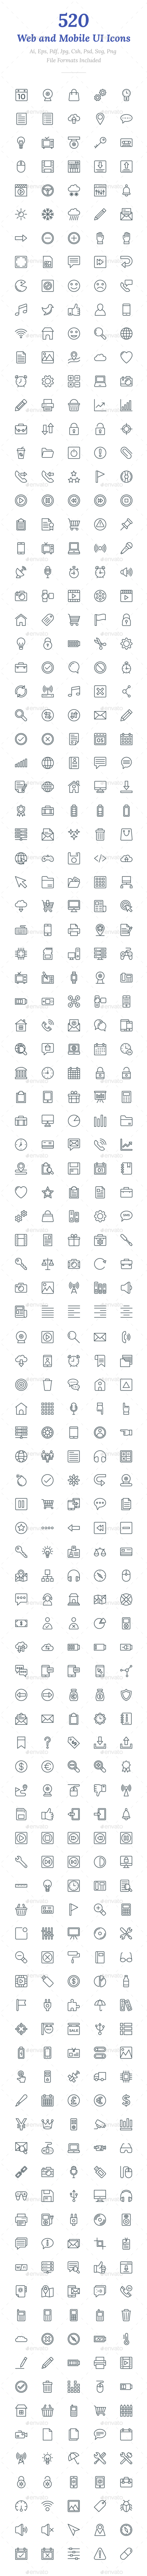 GraphicRiver 520 Web and Mobile UI Line Icons 20702016